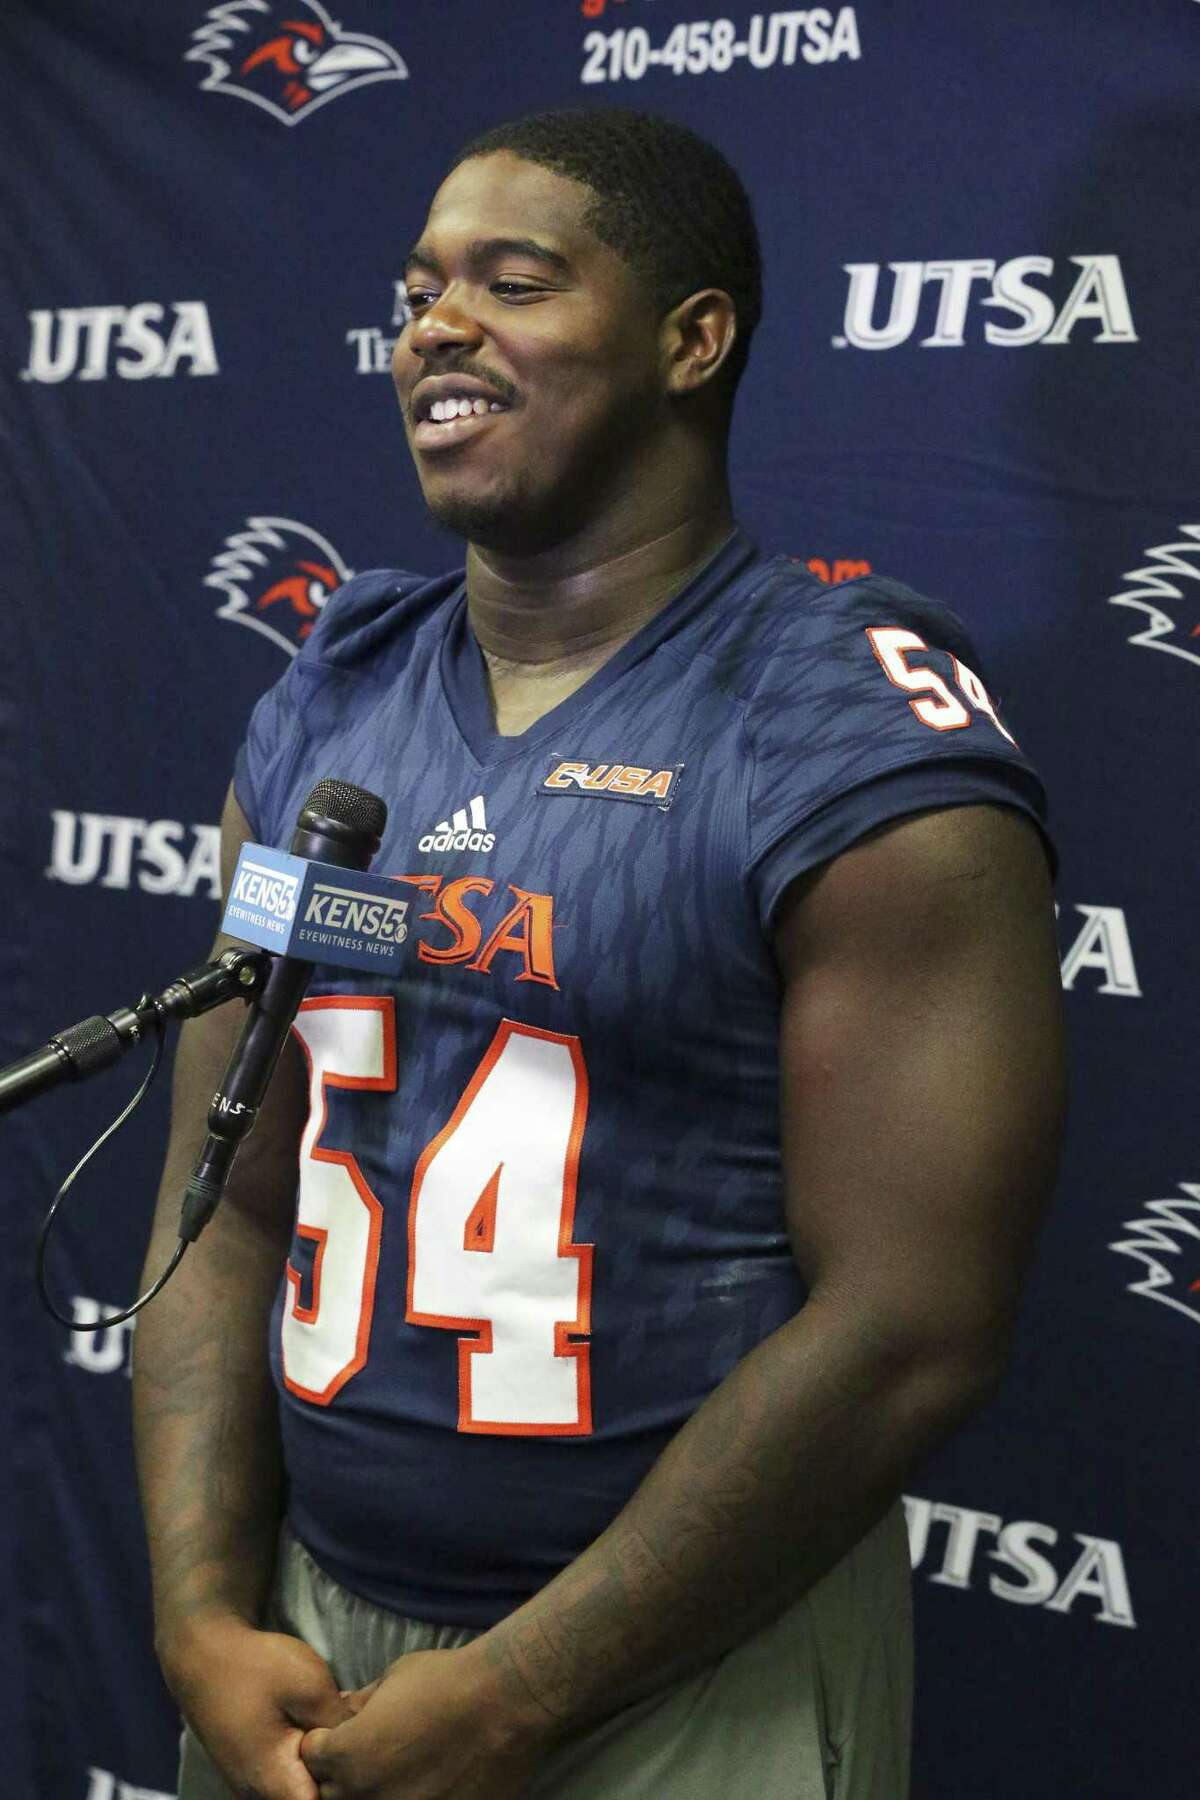 UTSA expects tackle Kevin Strong Jr. to help keep its defense at the top in 2018.